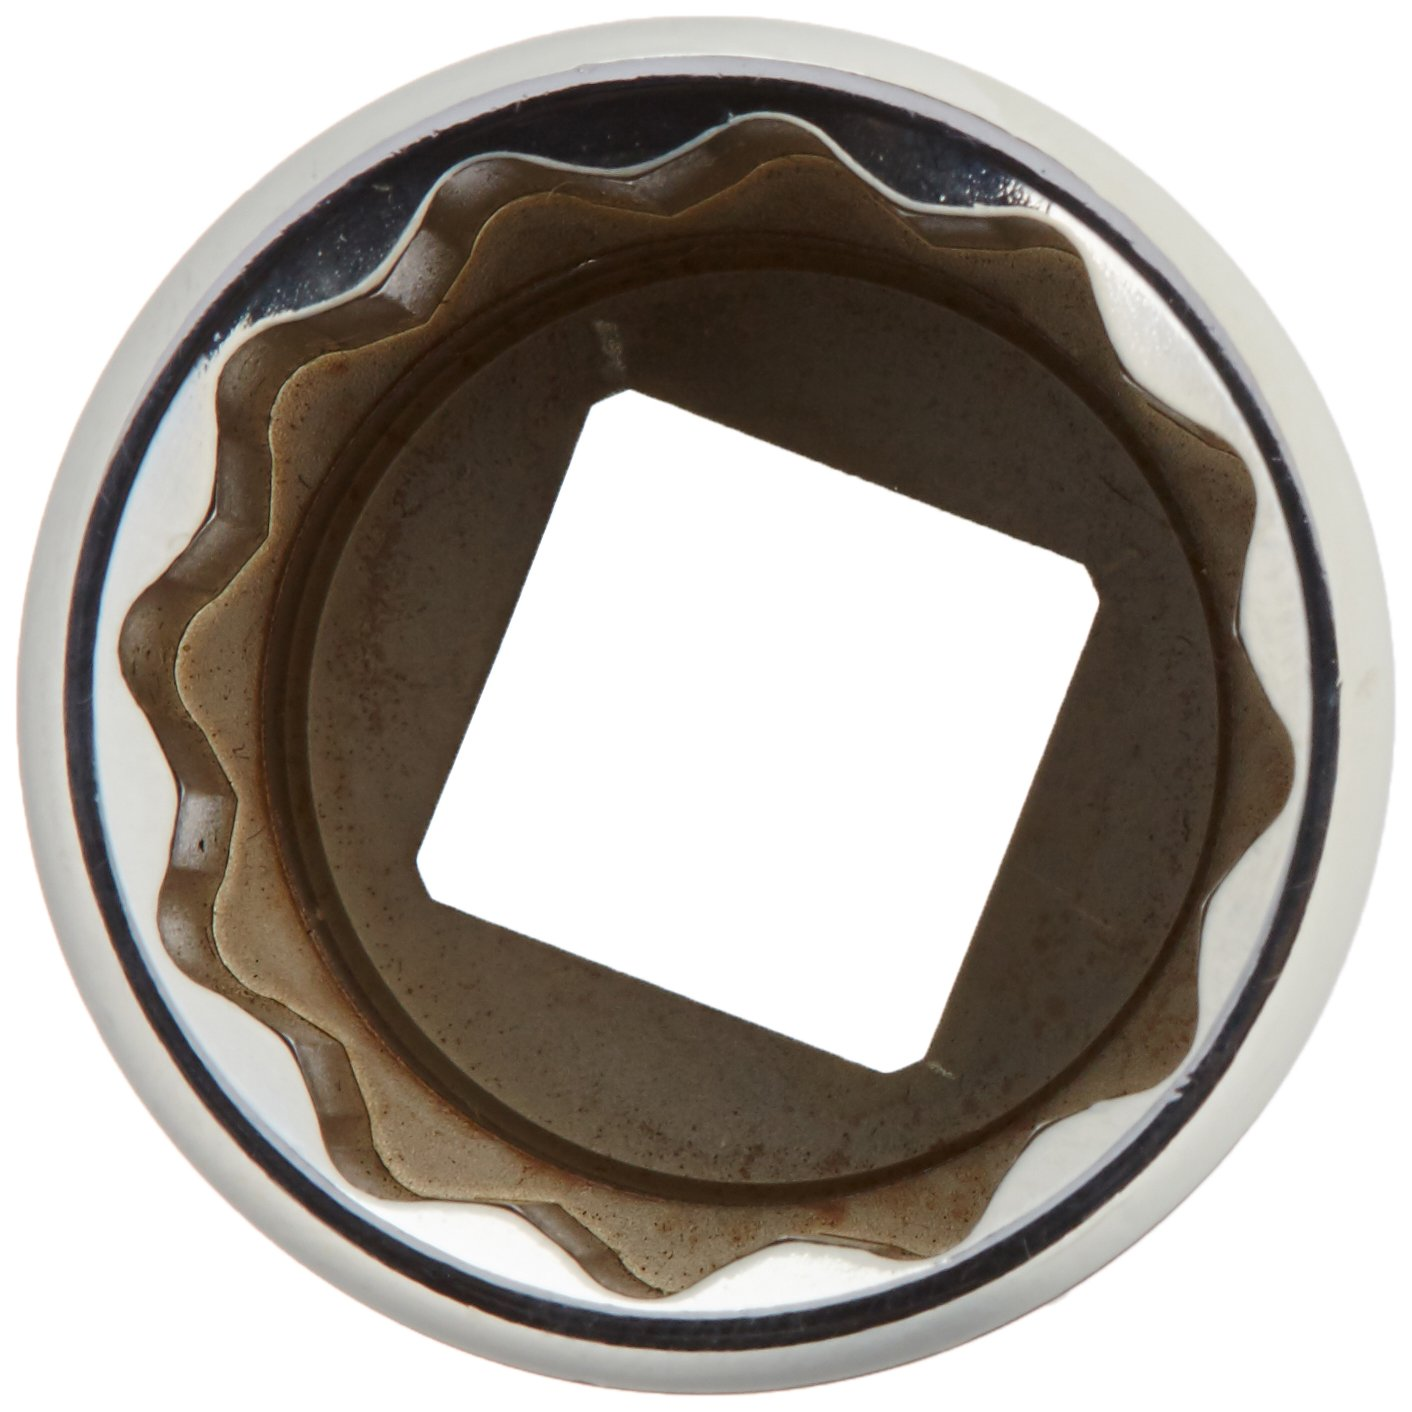 Williams STM-1223 1//2 Drive Shallow Socket 23mm JH Williams Tool Group 12 Point